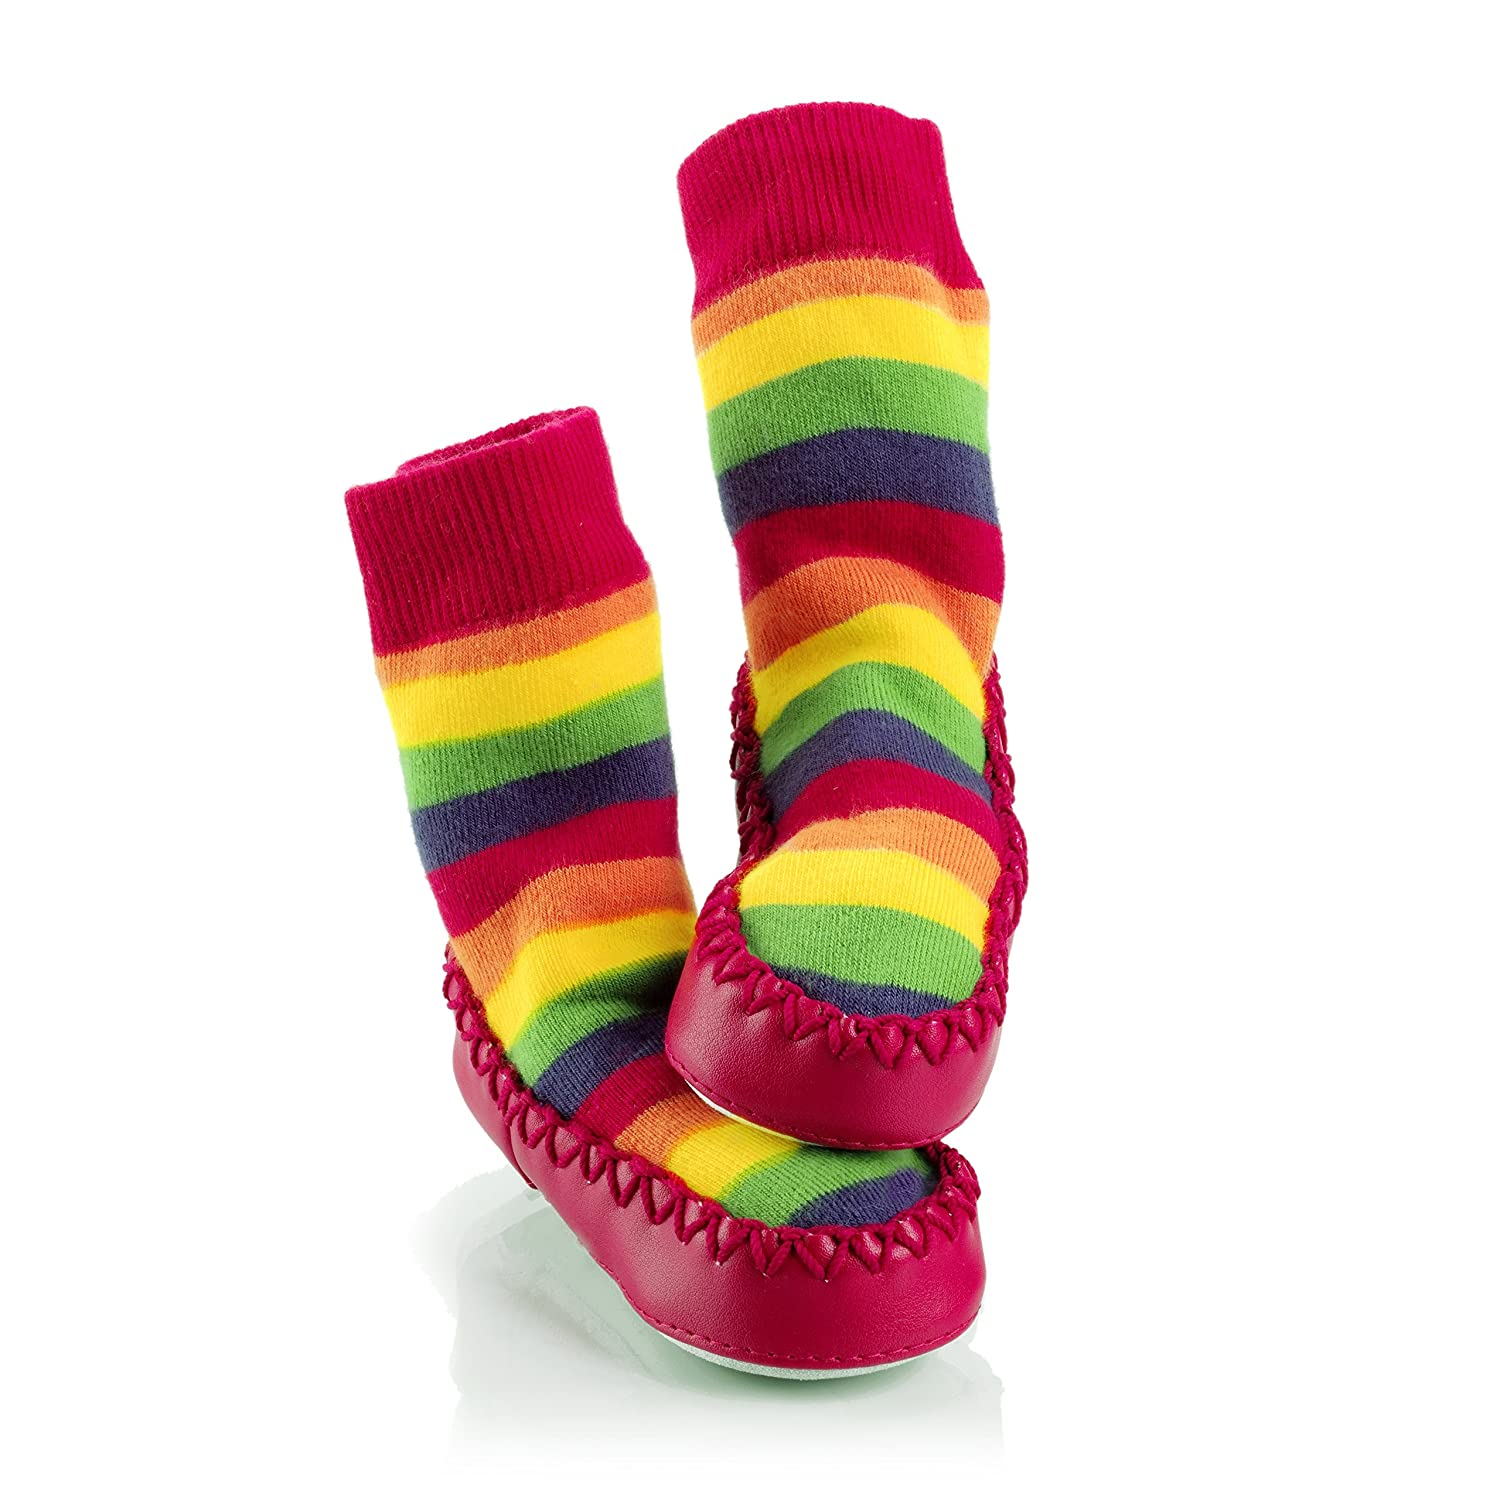 Mocc s Moccasin Slipper Socks Keeping Little Toes Warm Rainbow